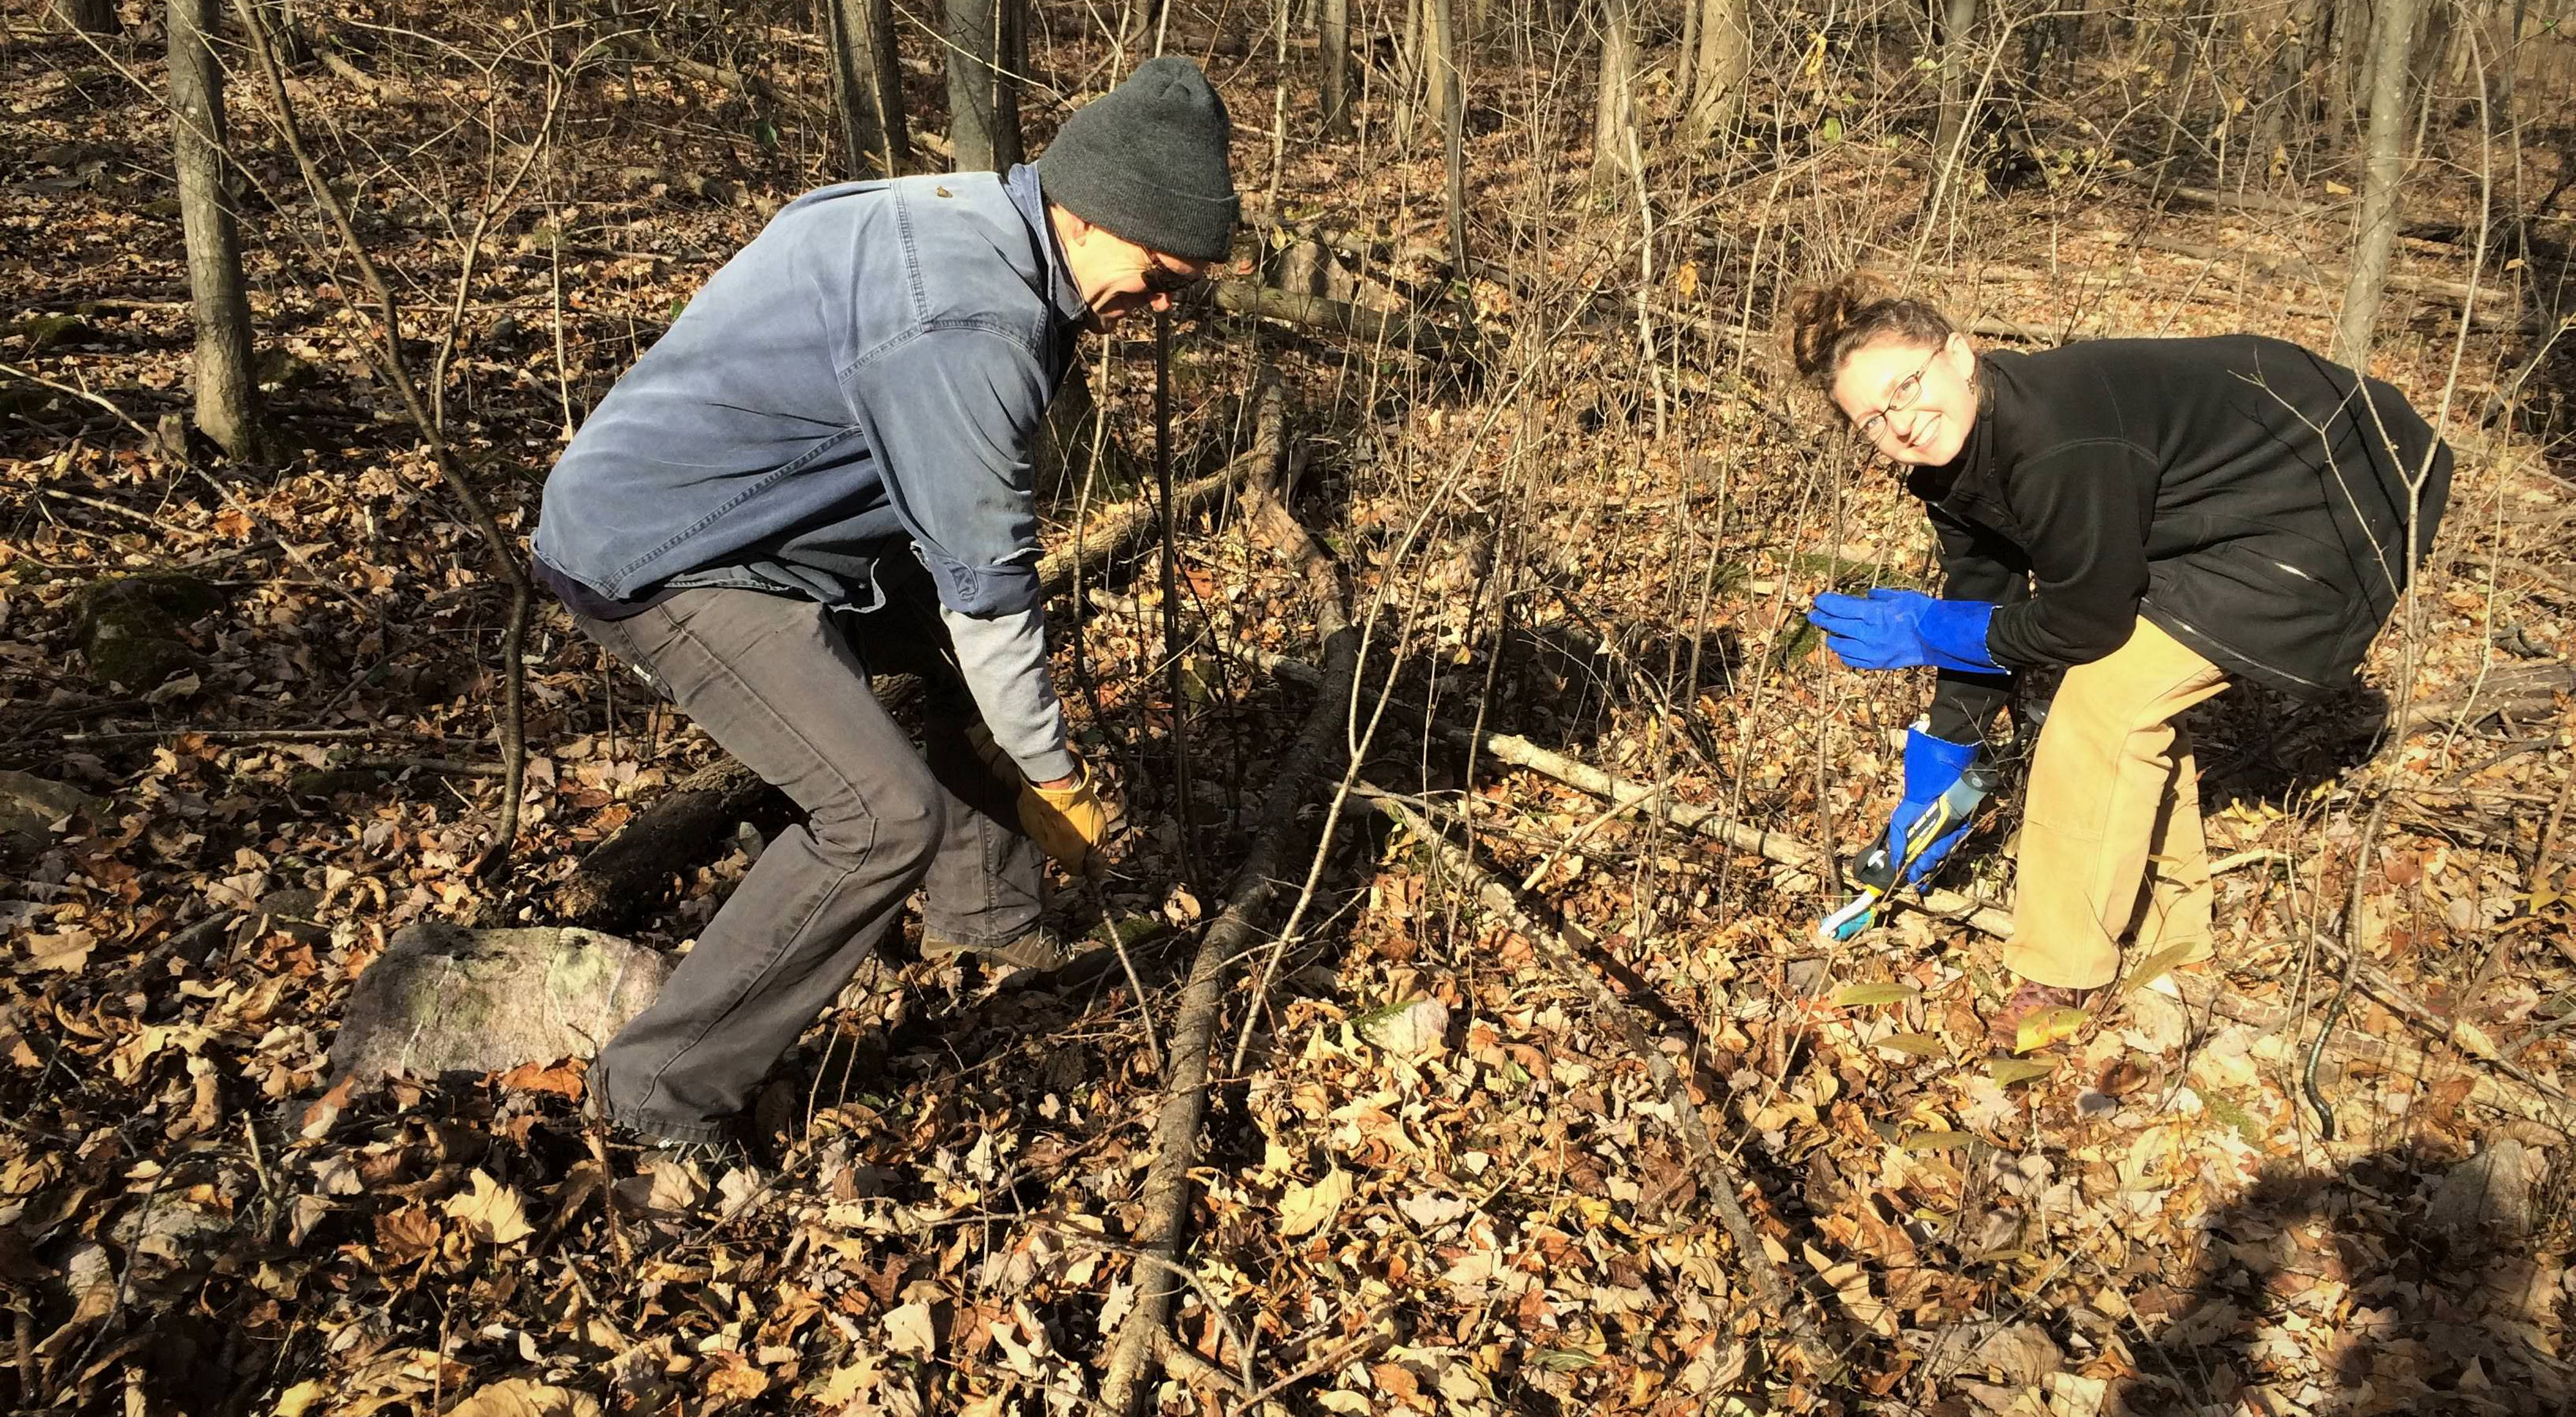 Two participants help remove buckthorn in a forest in late fall.